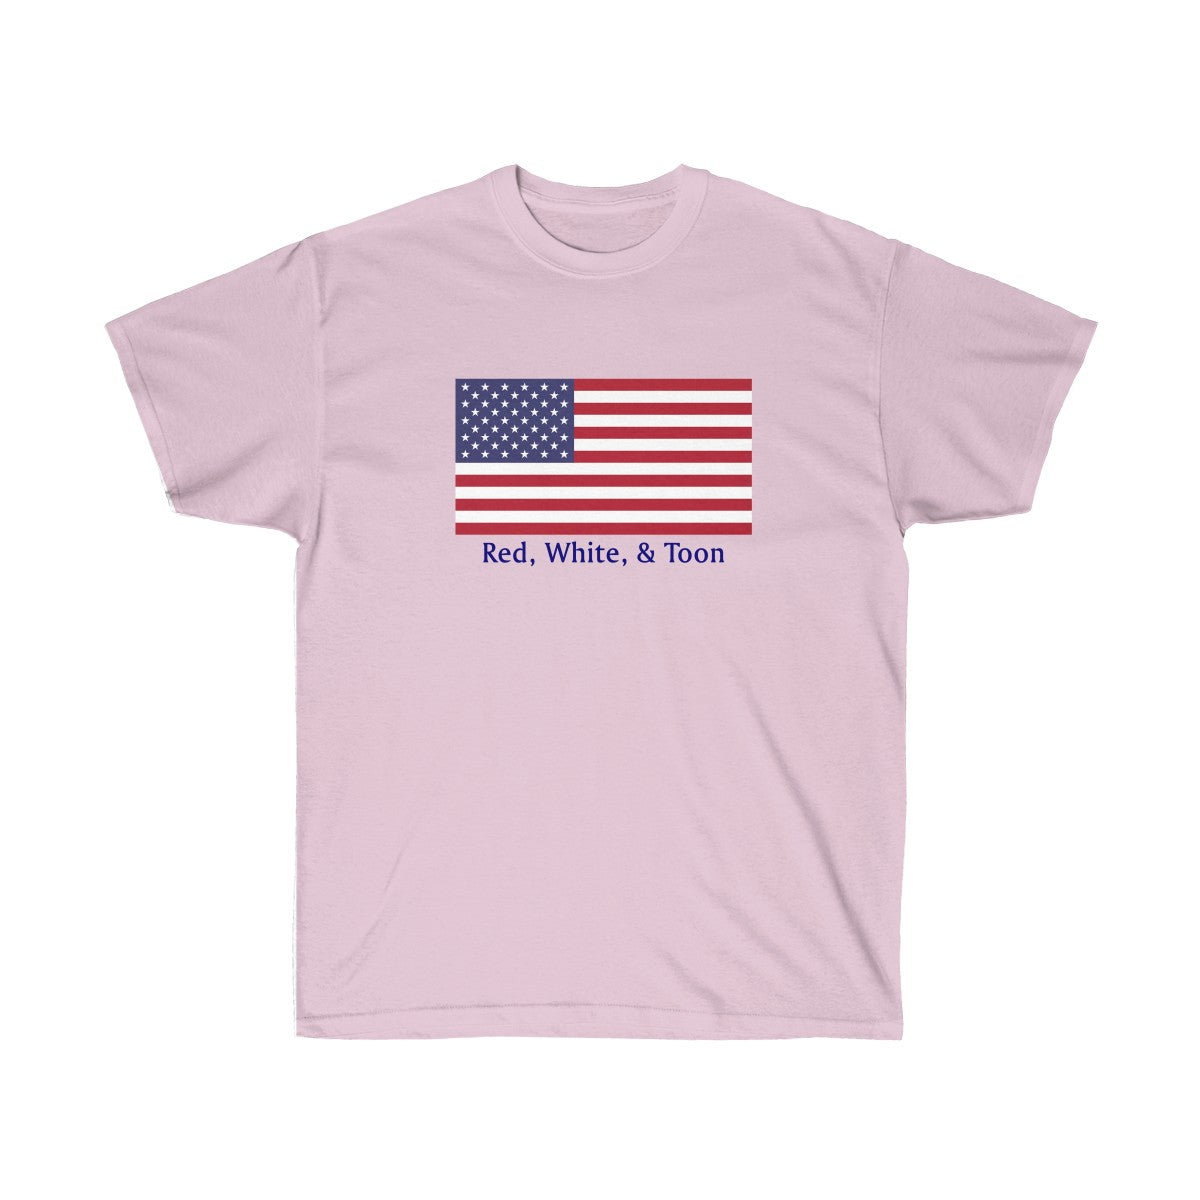 Pontoon Girl - Red White and Toon - Classic American Flag - TWO SIDED T shirt